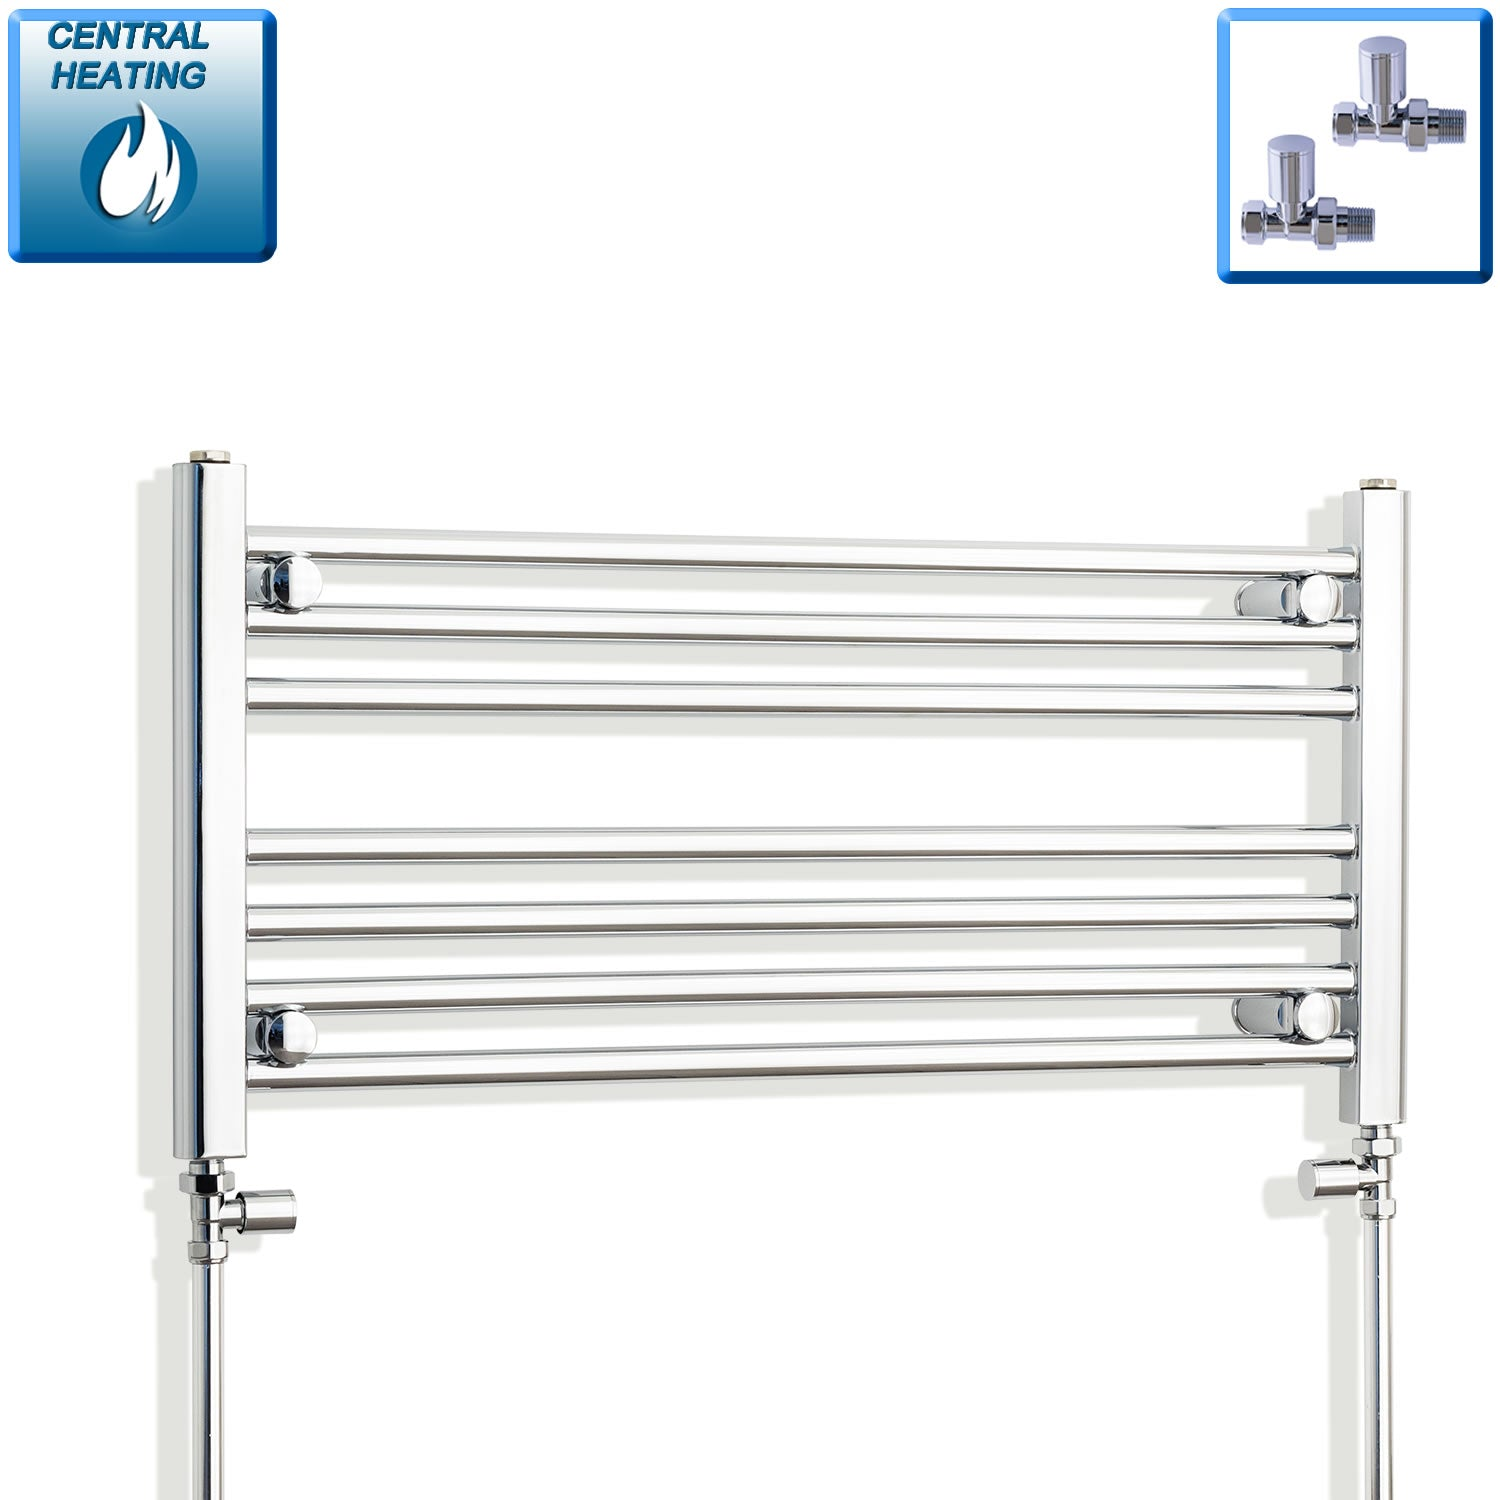 750mm Wide 400mm High Curved Chrome Heated Towel Rail Radiator HTR,With Straight Valve